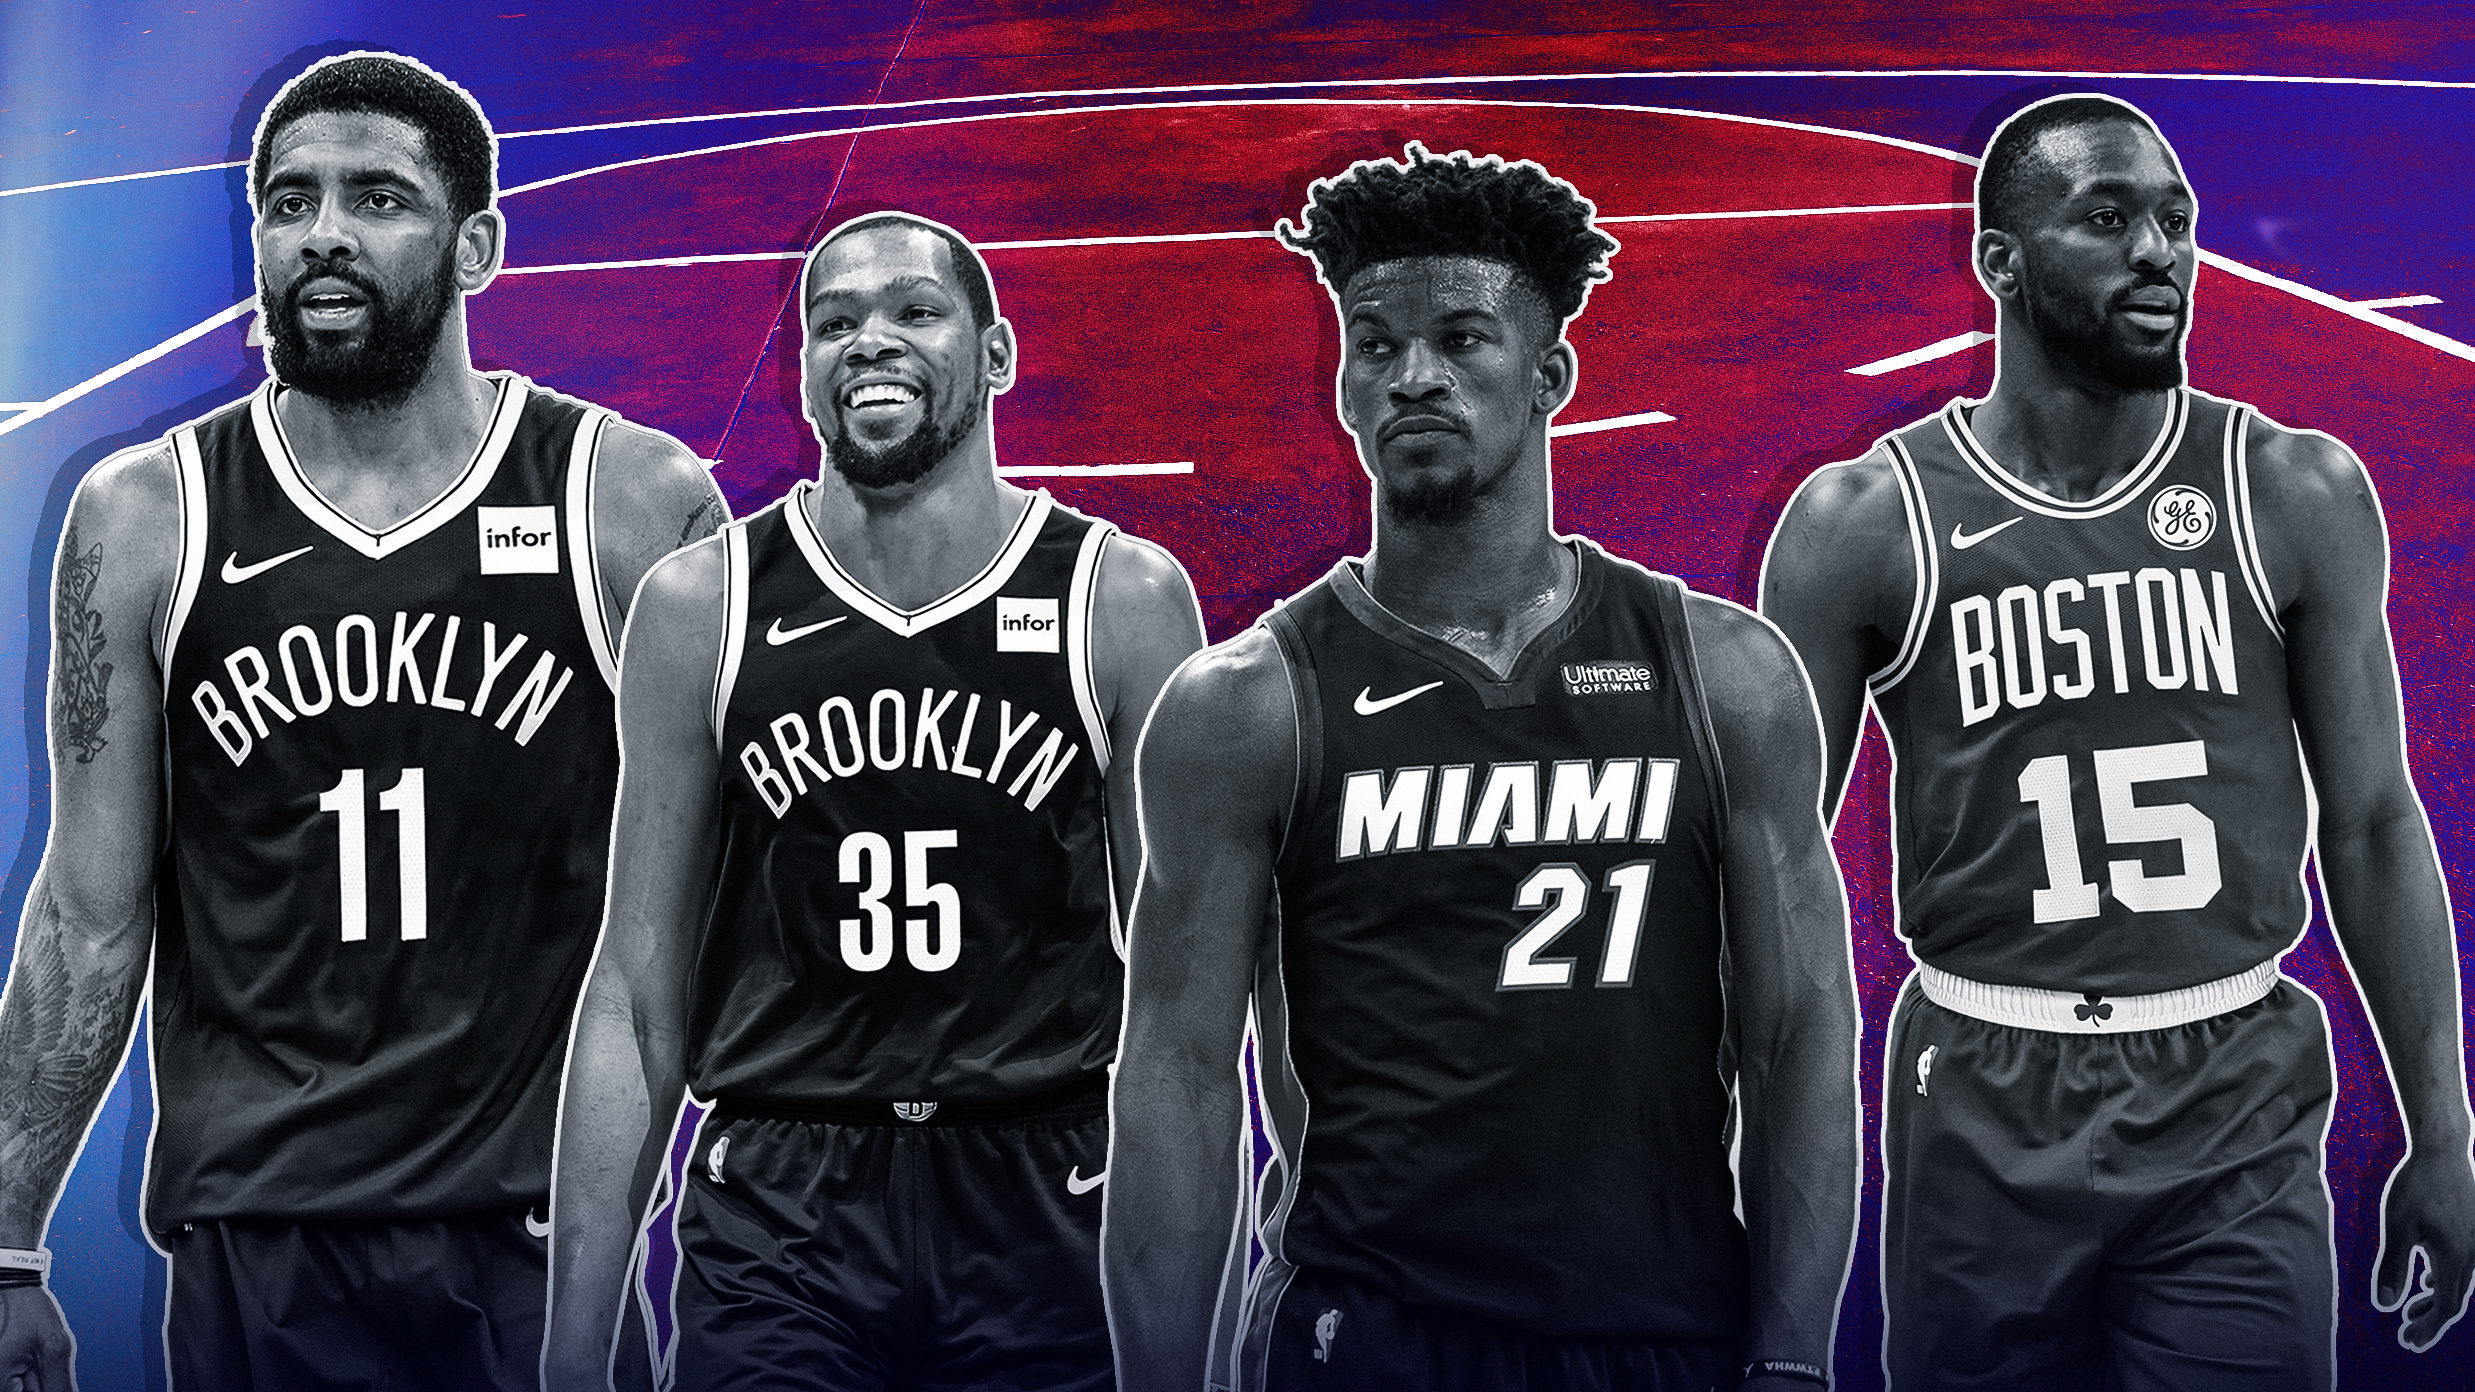 NBA trade Kevin Durant Kyrie Irving Nets Dangelo Russell Klay Thompson Warriors Jimmy Butler Miami Heat Free Agency 2019